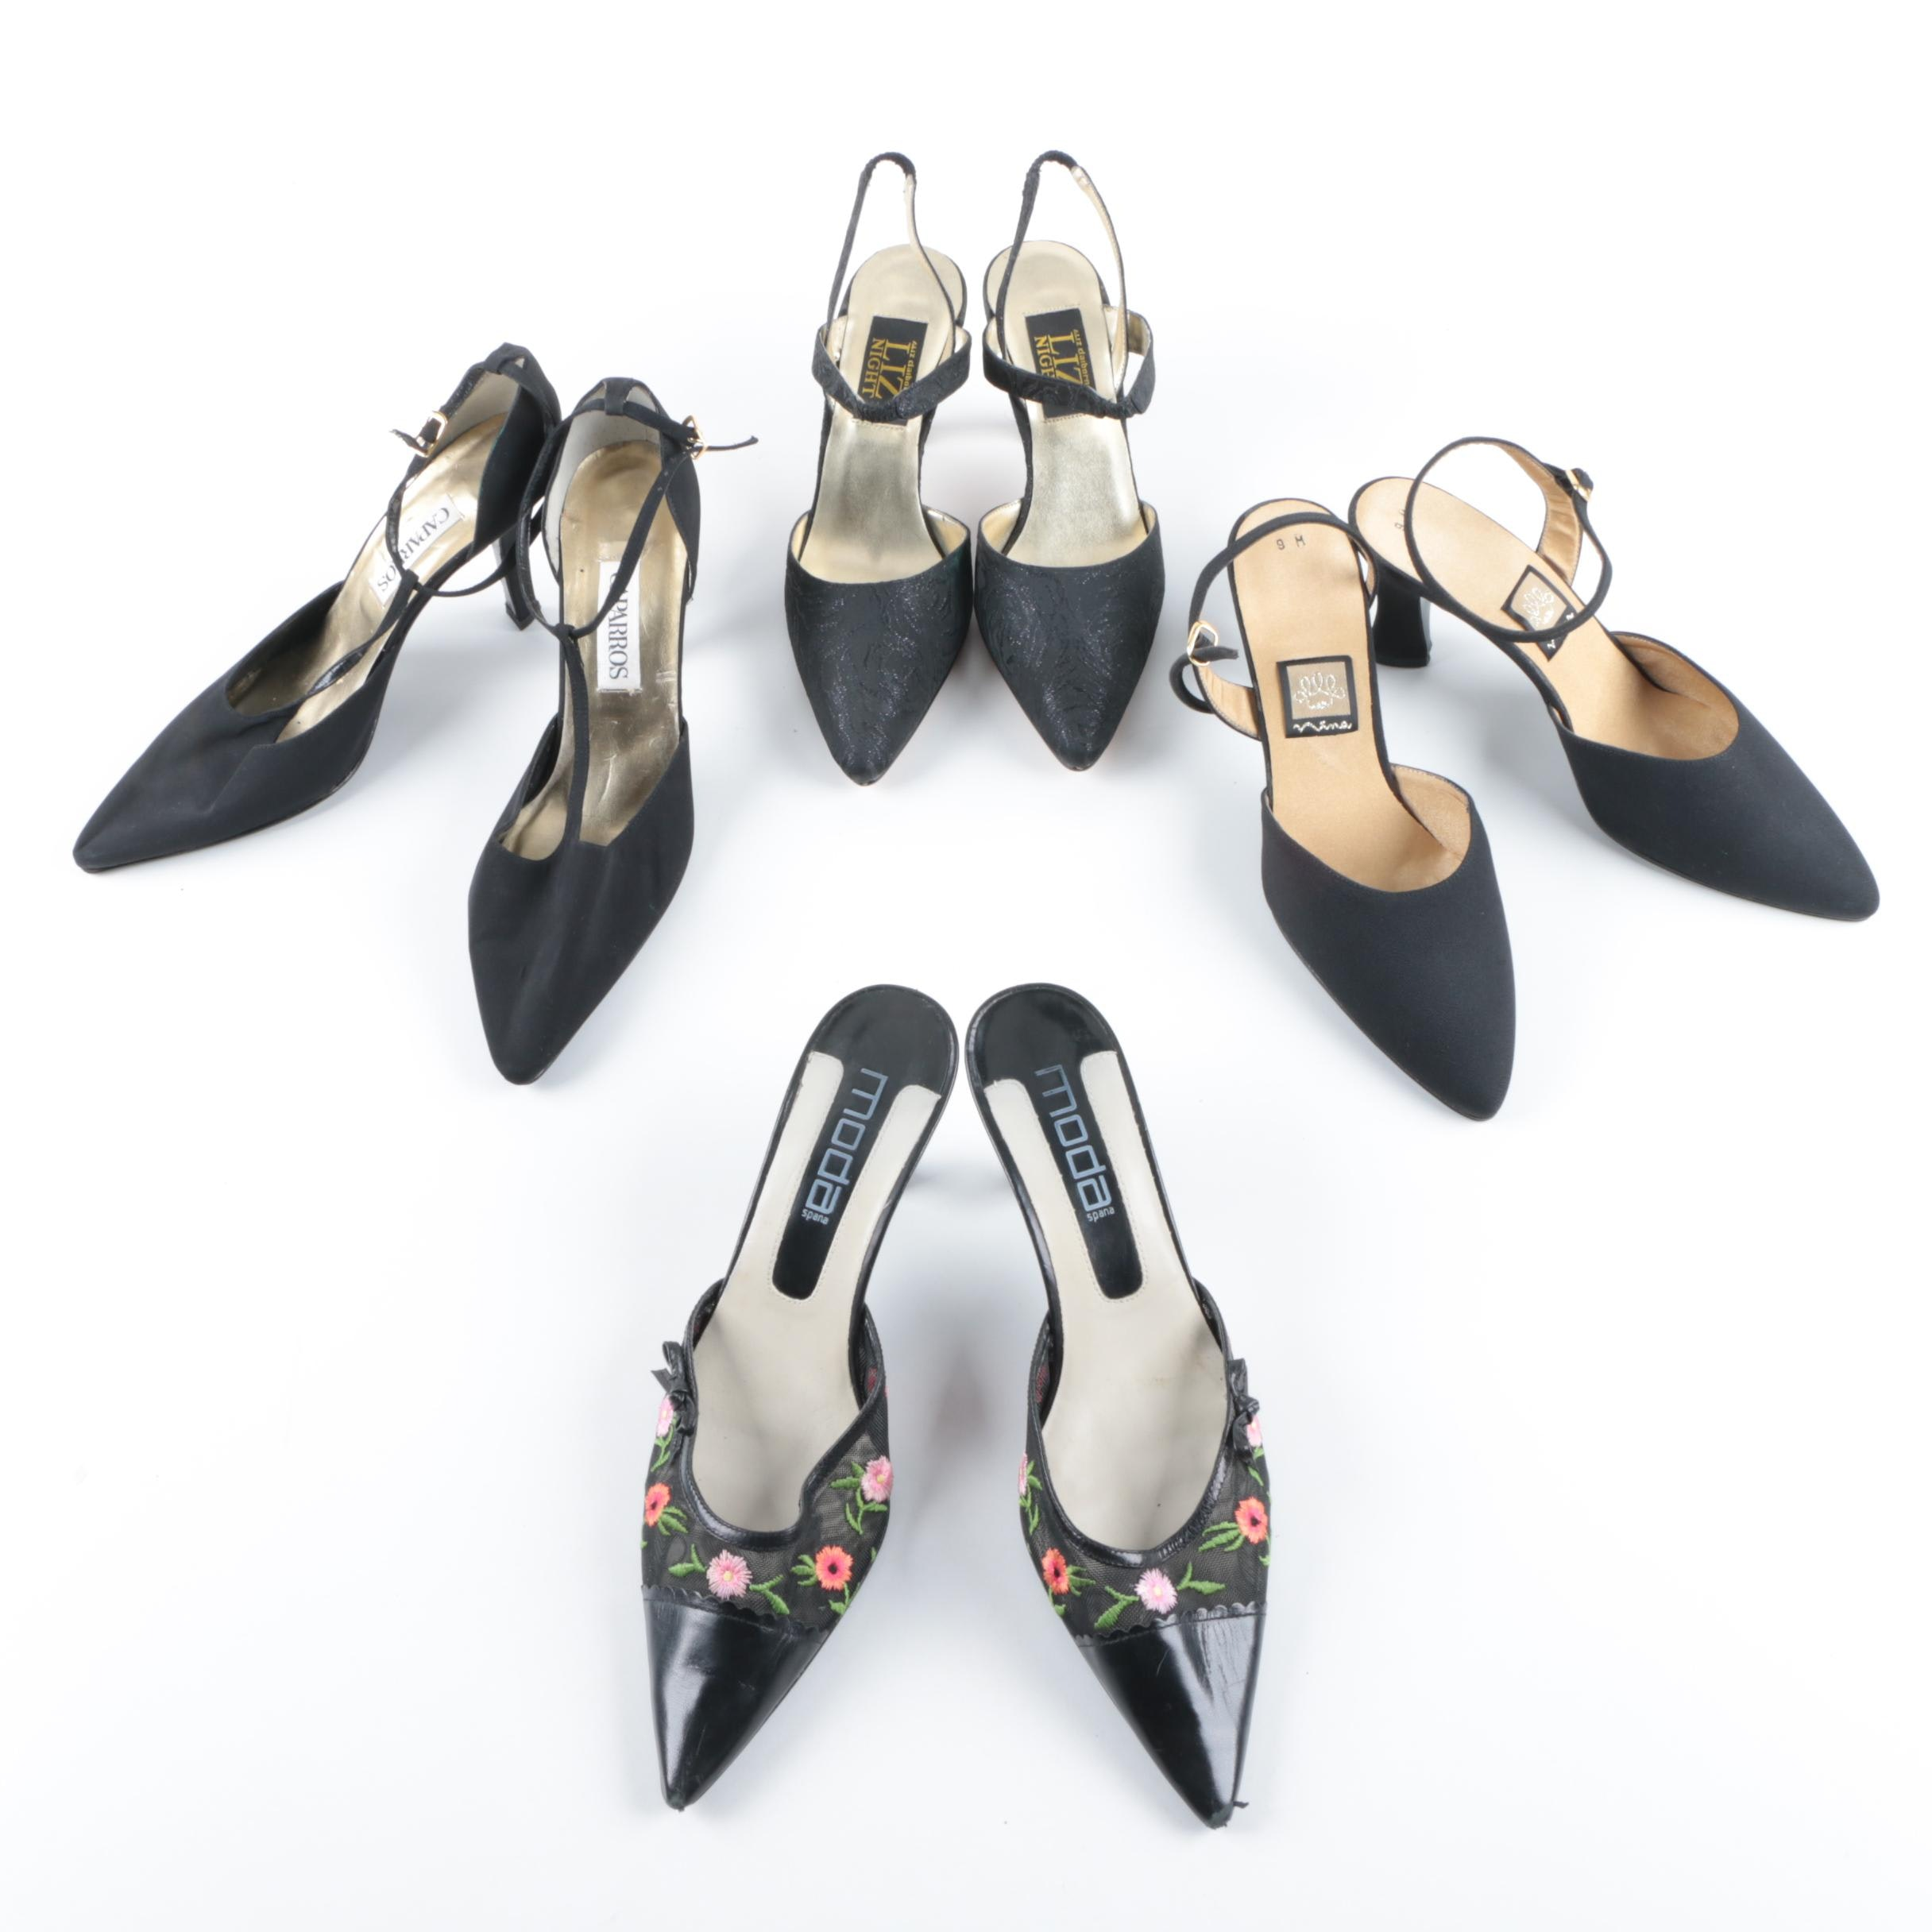 Women's High Heeled Shoes, Including Moda